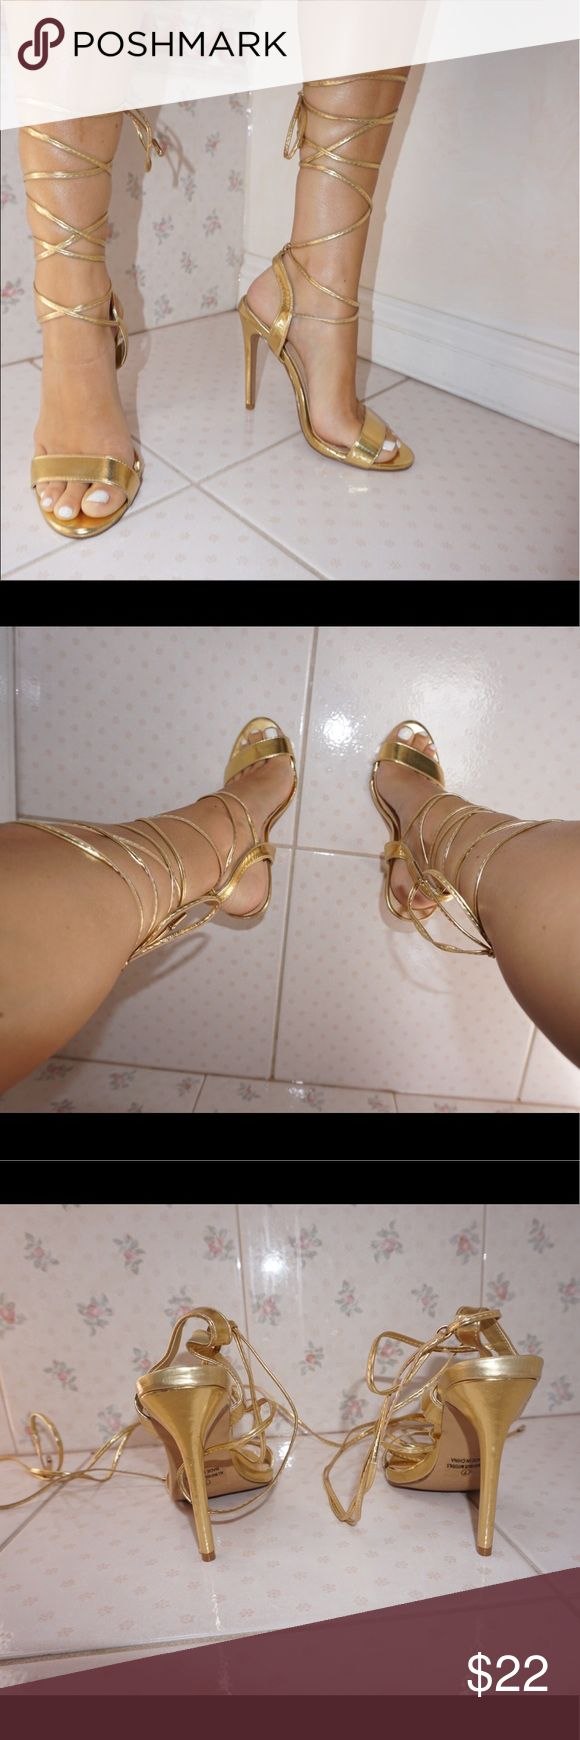 Gold Strap Up Heels ✨ Gold strap up sandal heels. Worn only once. In very good condition. Comfortable to wear. Fits true to size ! 4.5 inch heel ! Liliana Shoes Heels